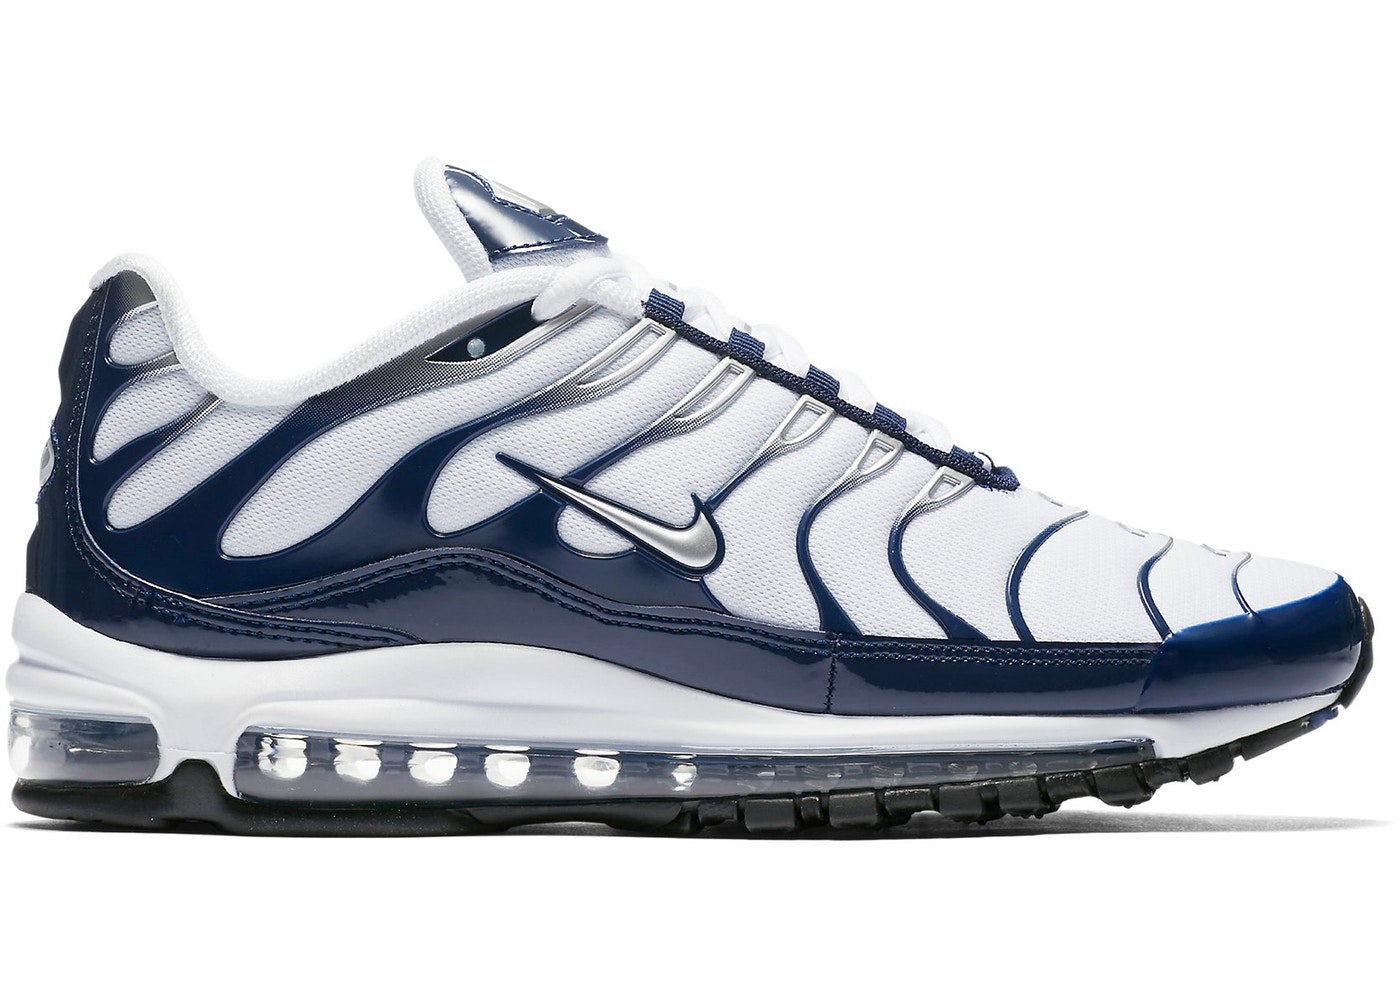 Air Max 97 Plus White Navy - AH8144-100 a694c7da5